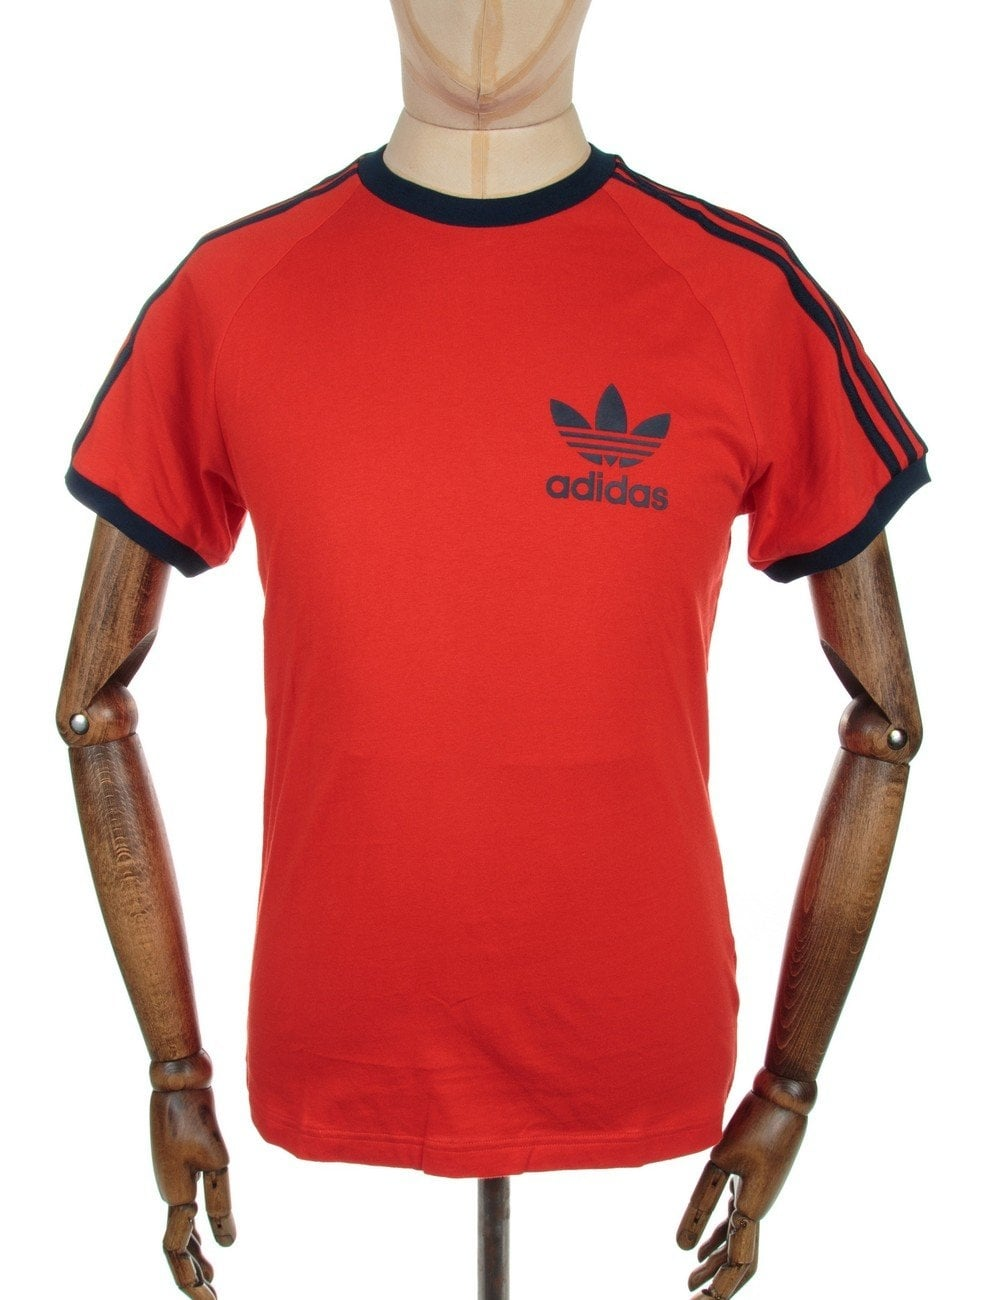 Retro Trefoil Logo T-shirt - Red